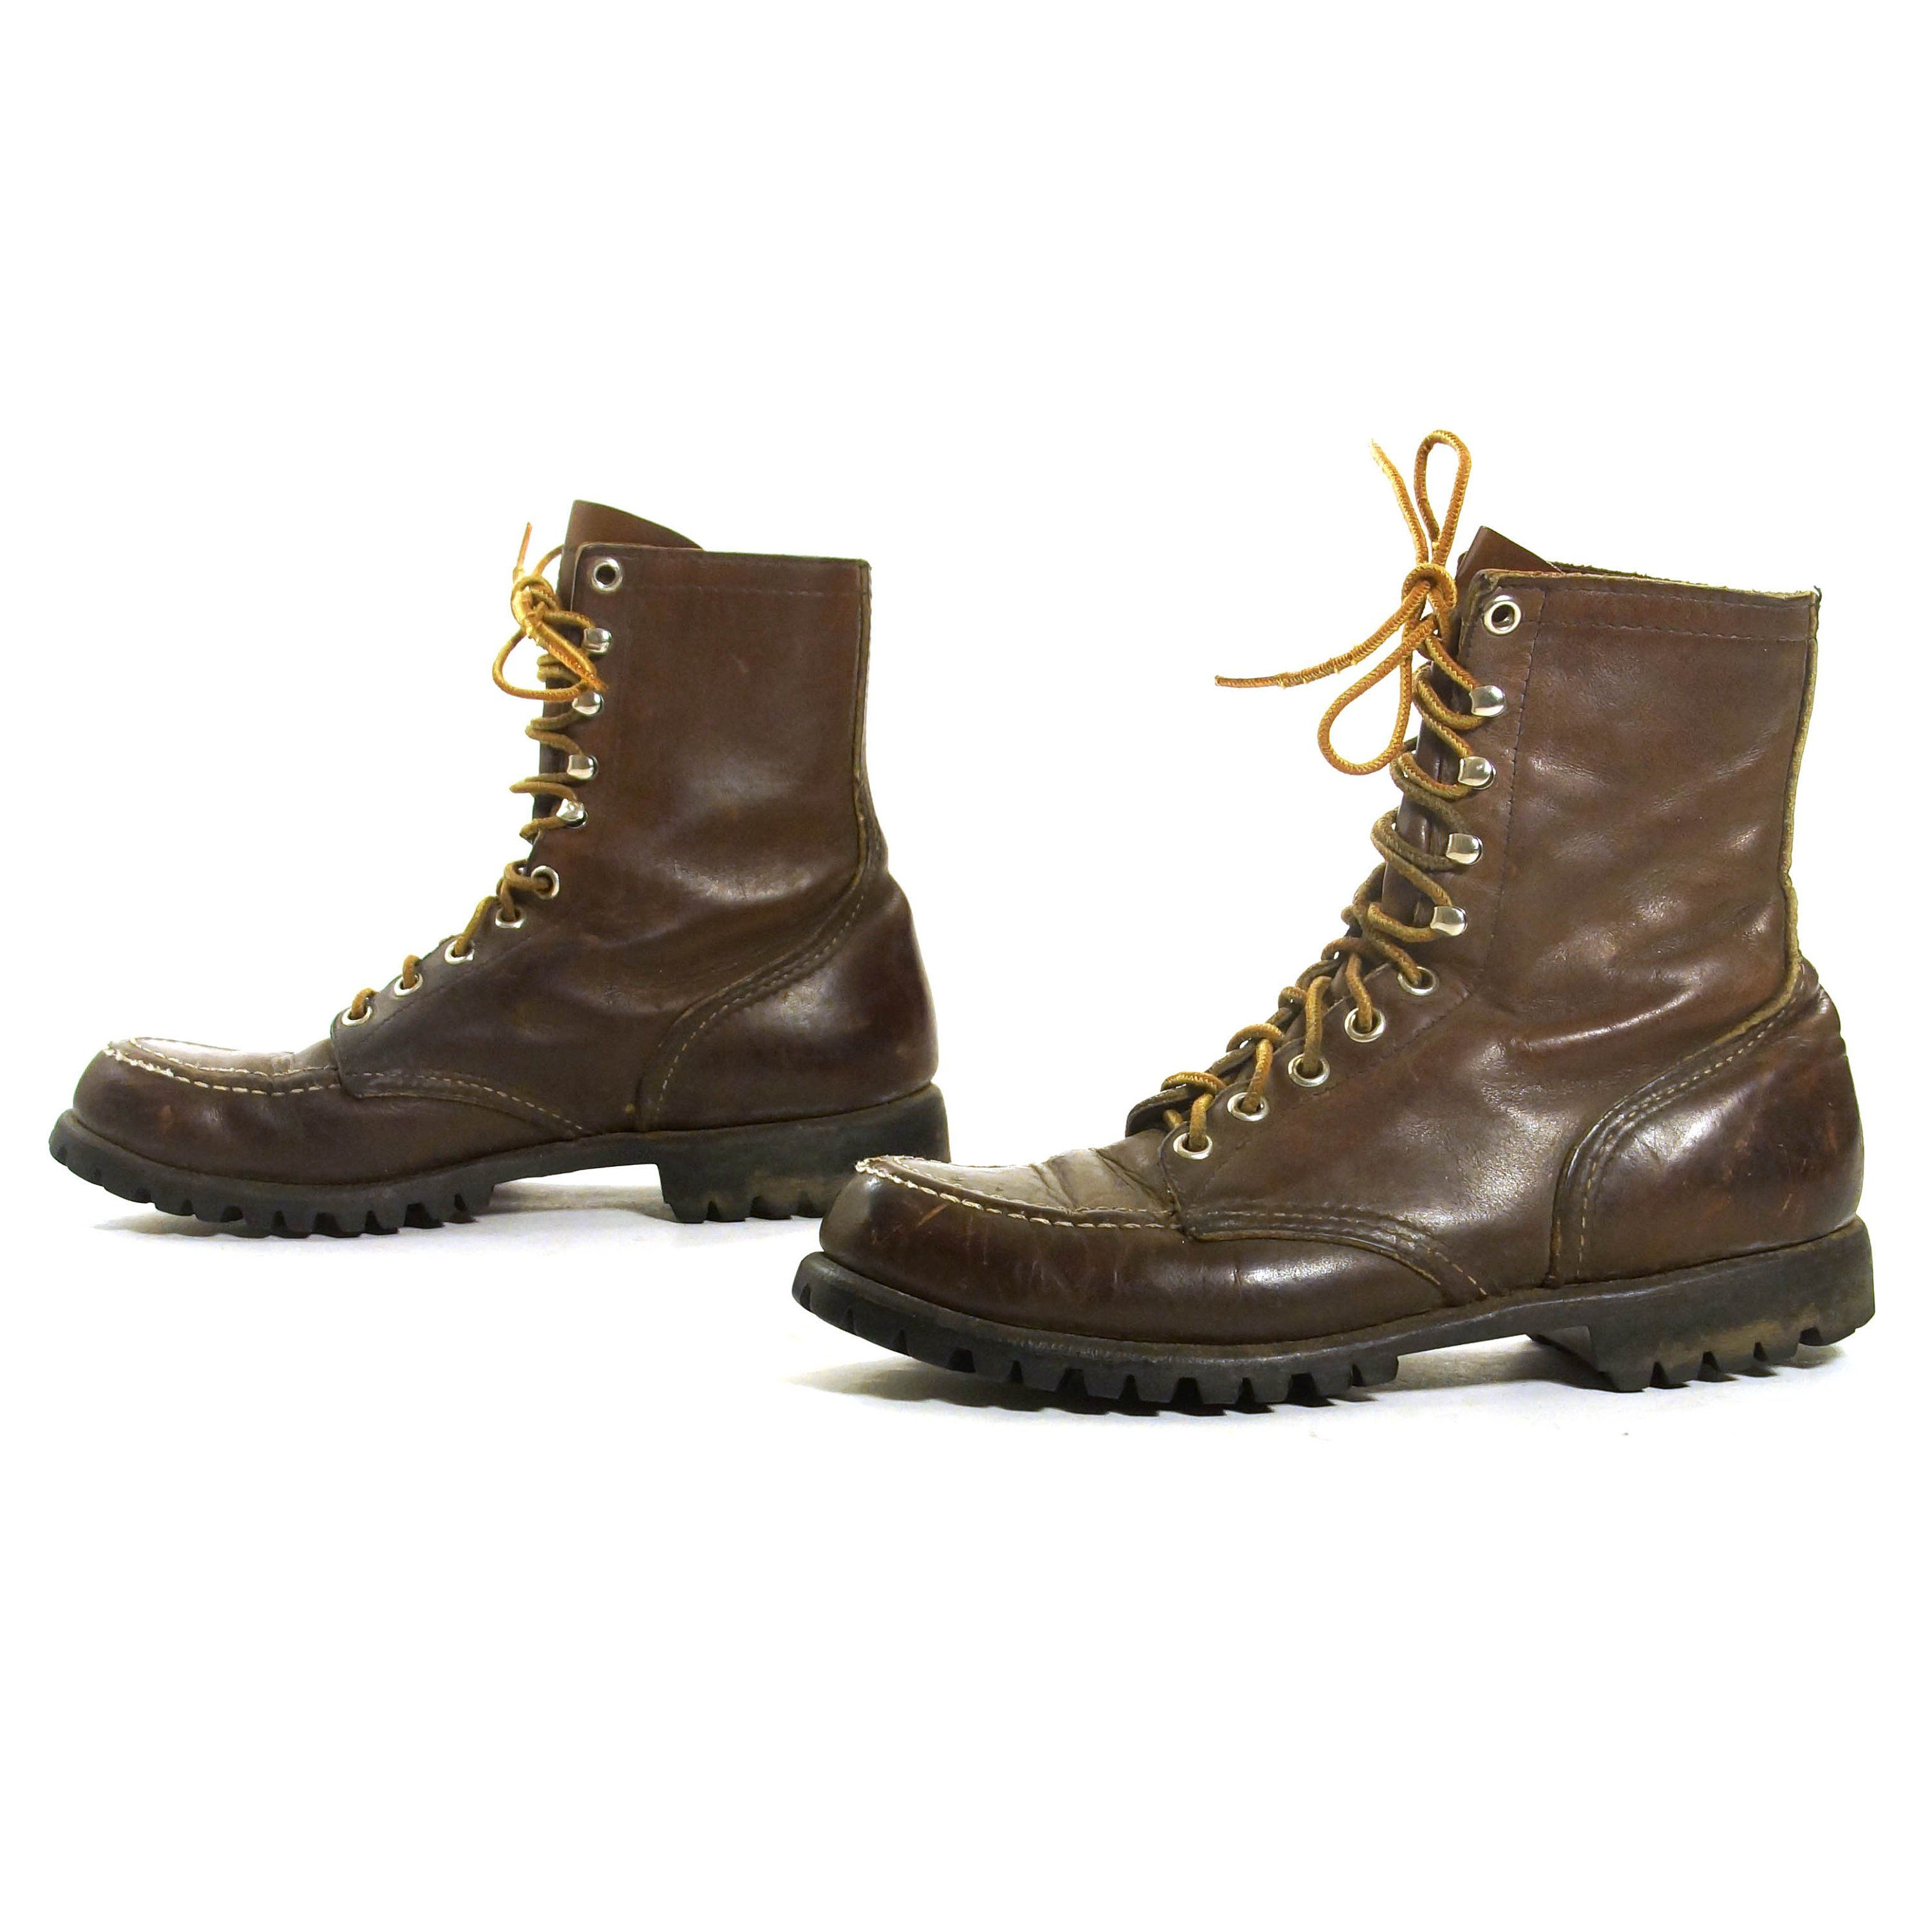 cde309119f576 Red Wing Lace Up Ankle Boots Vintage 90 Brown Leather Work Combat ...